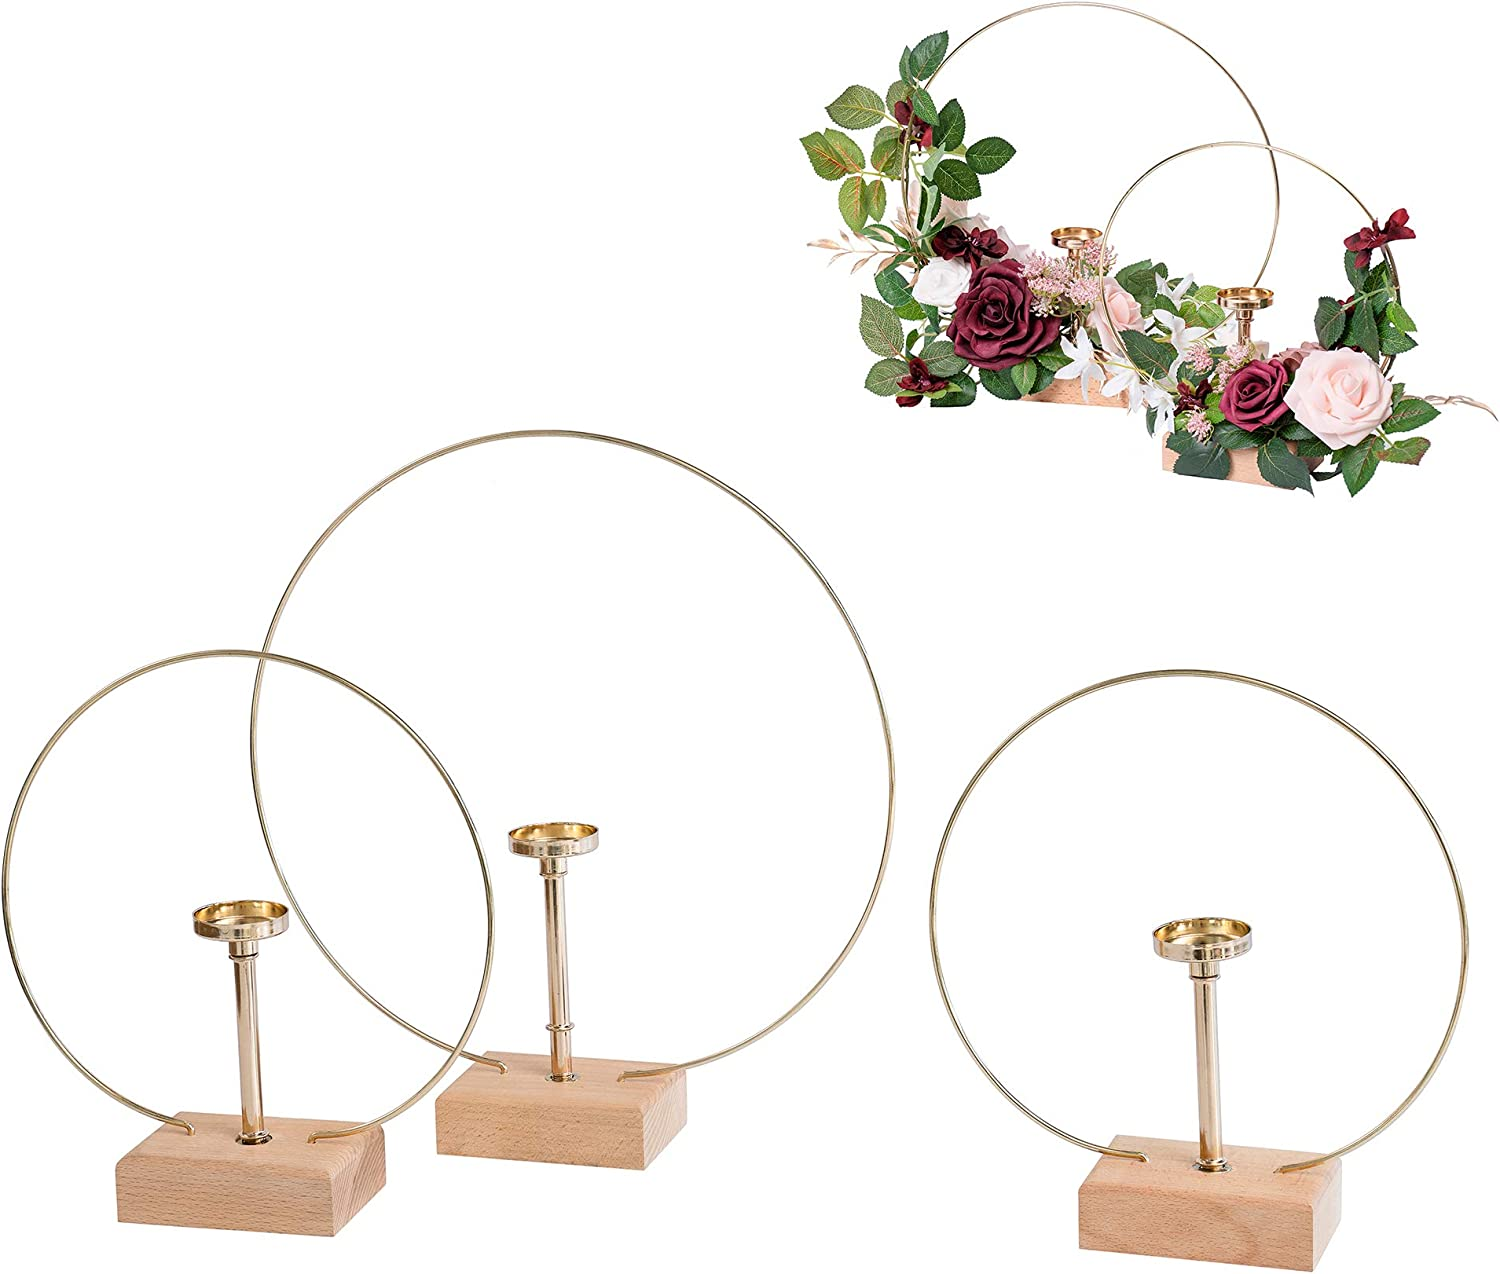 Ling's moment Handcrafted Candle Holder Hoop Wreath Centerpieces for Sweetheart Table, Head Table, Ceremony Reception Decorations (Set of 3)